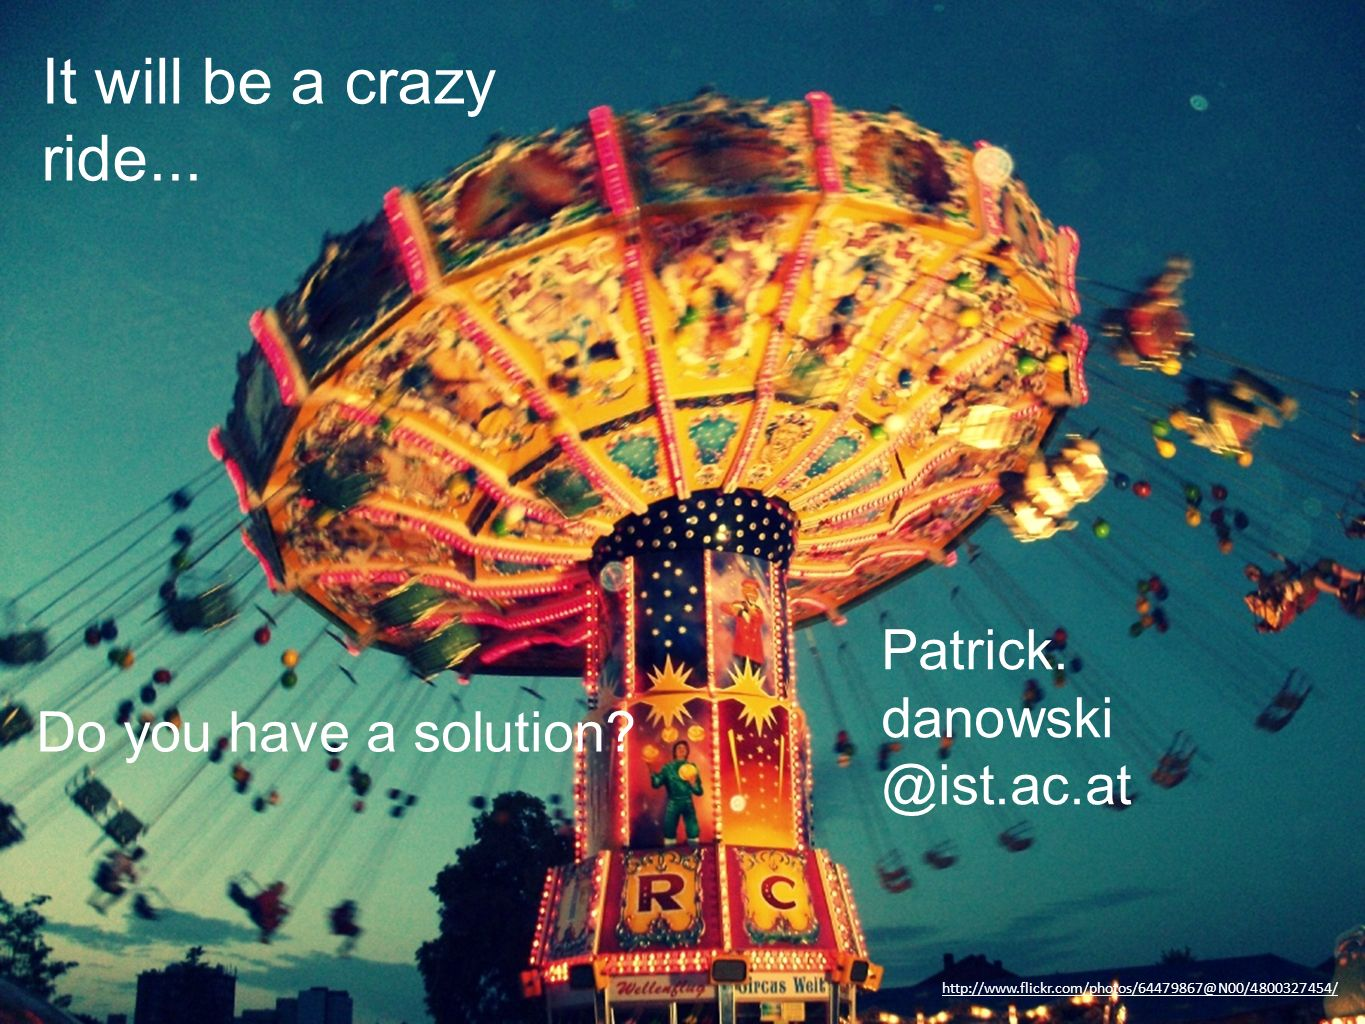 It will be a crazy ride... Patrick. danowski@ist.ac.at